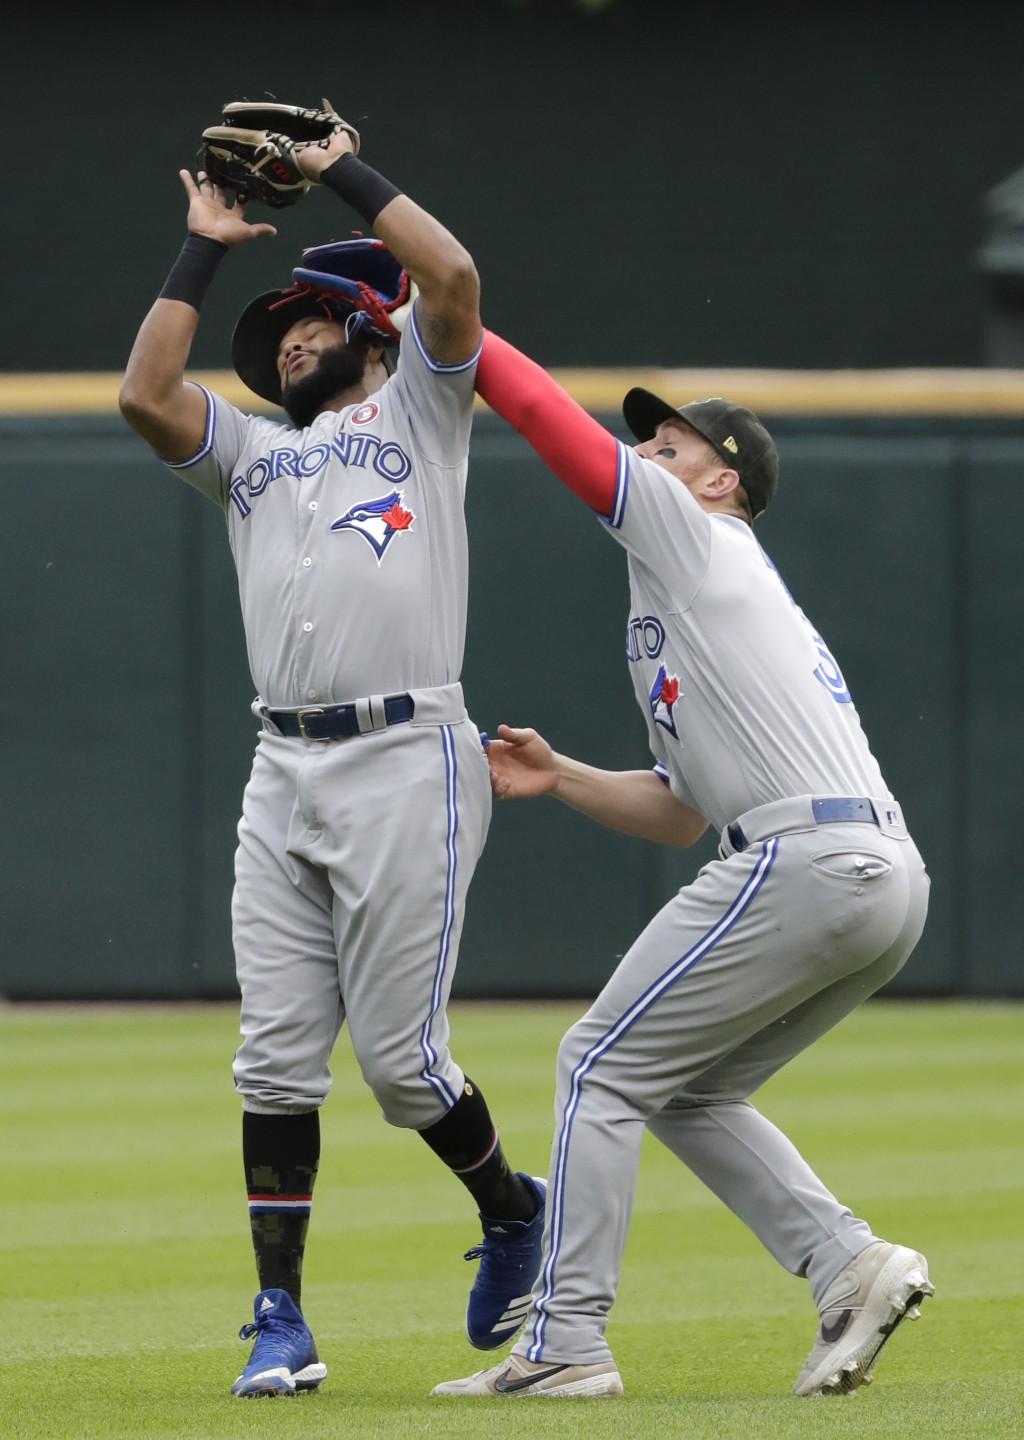 Toronto Blue Jays second baseman Richard Urena, left, and right fielder Brandon Drury collide as Urena makes a catch a fly ball by Chicago White Sox's...